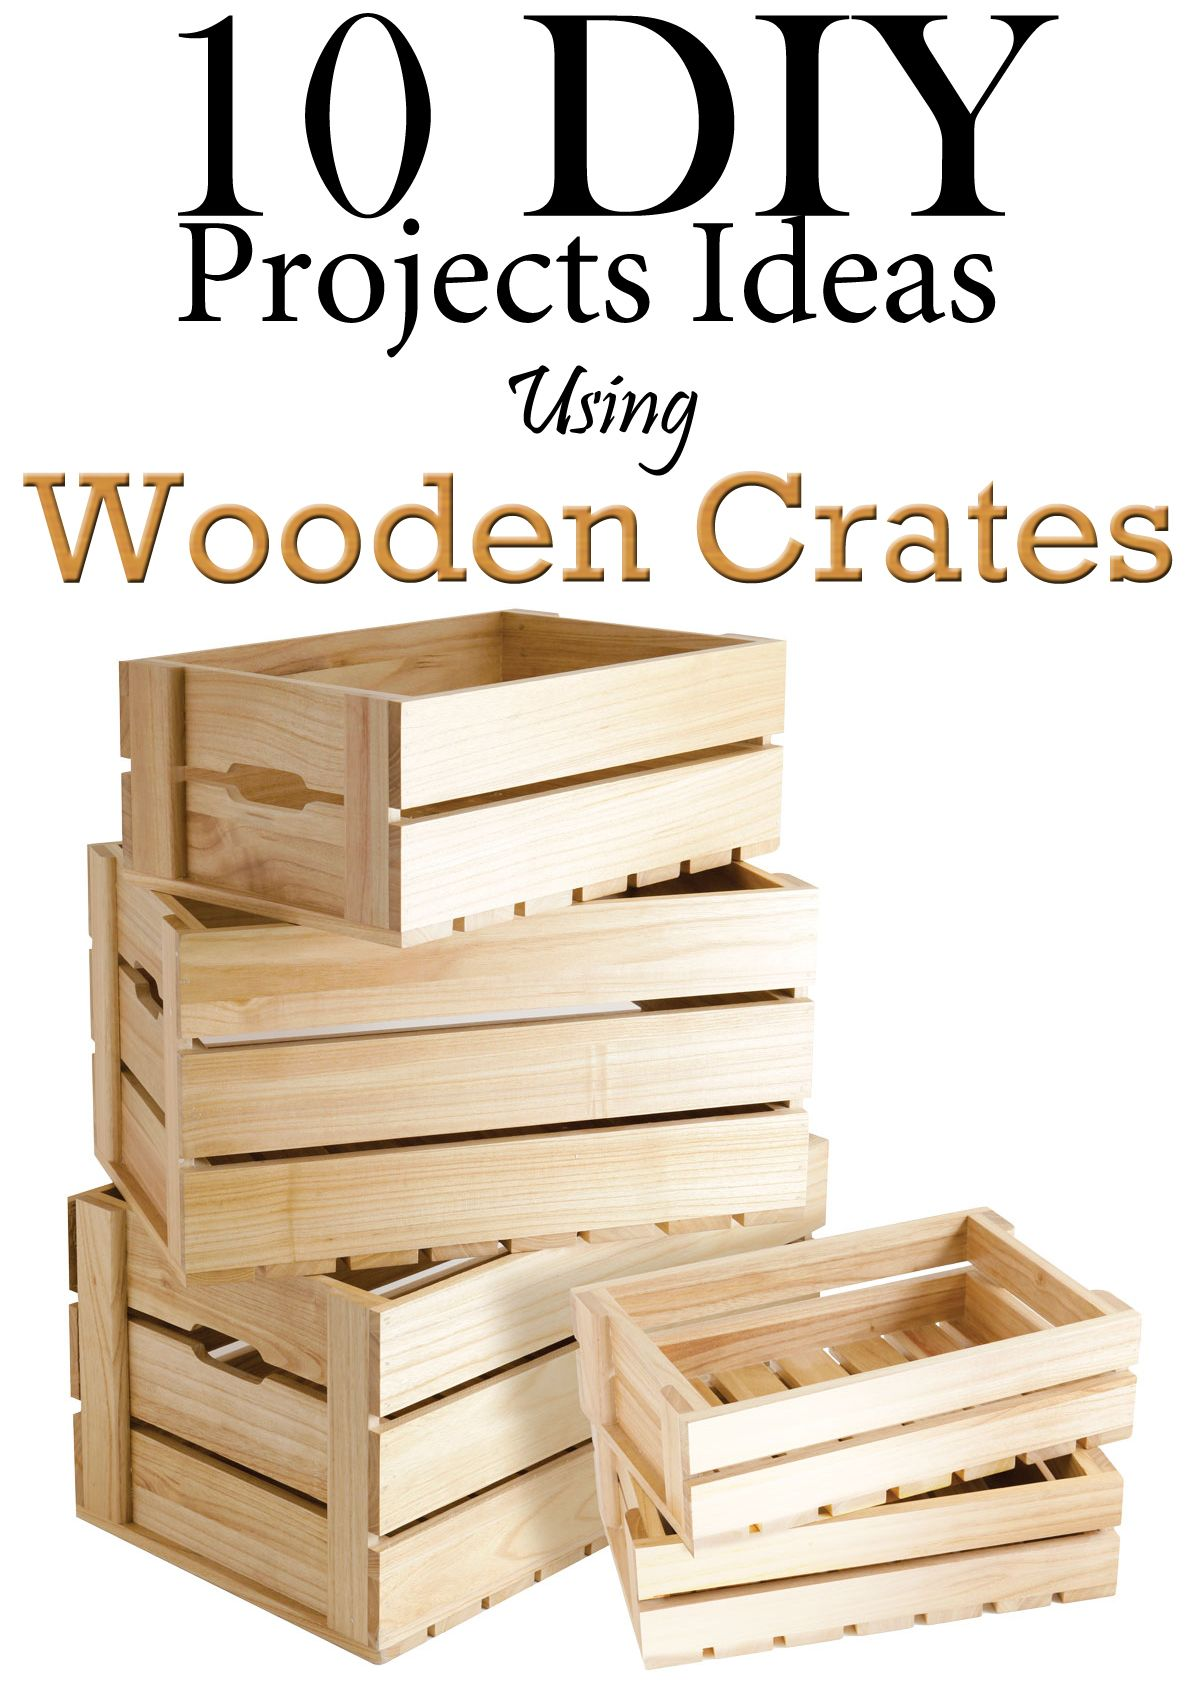 10 Diy Projects Ideas Using Wooden Crates Kastes